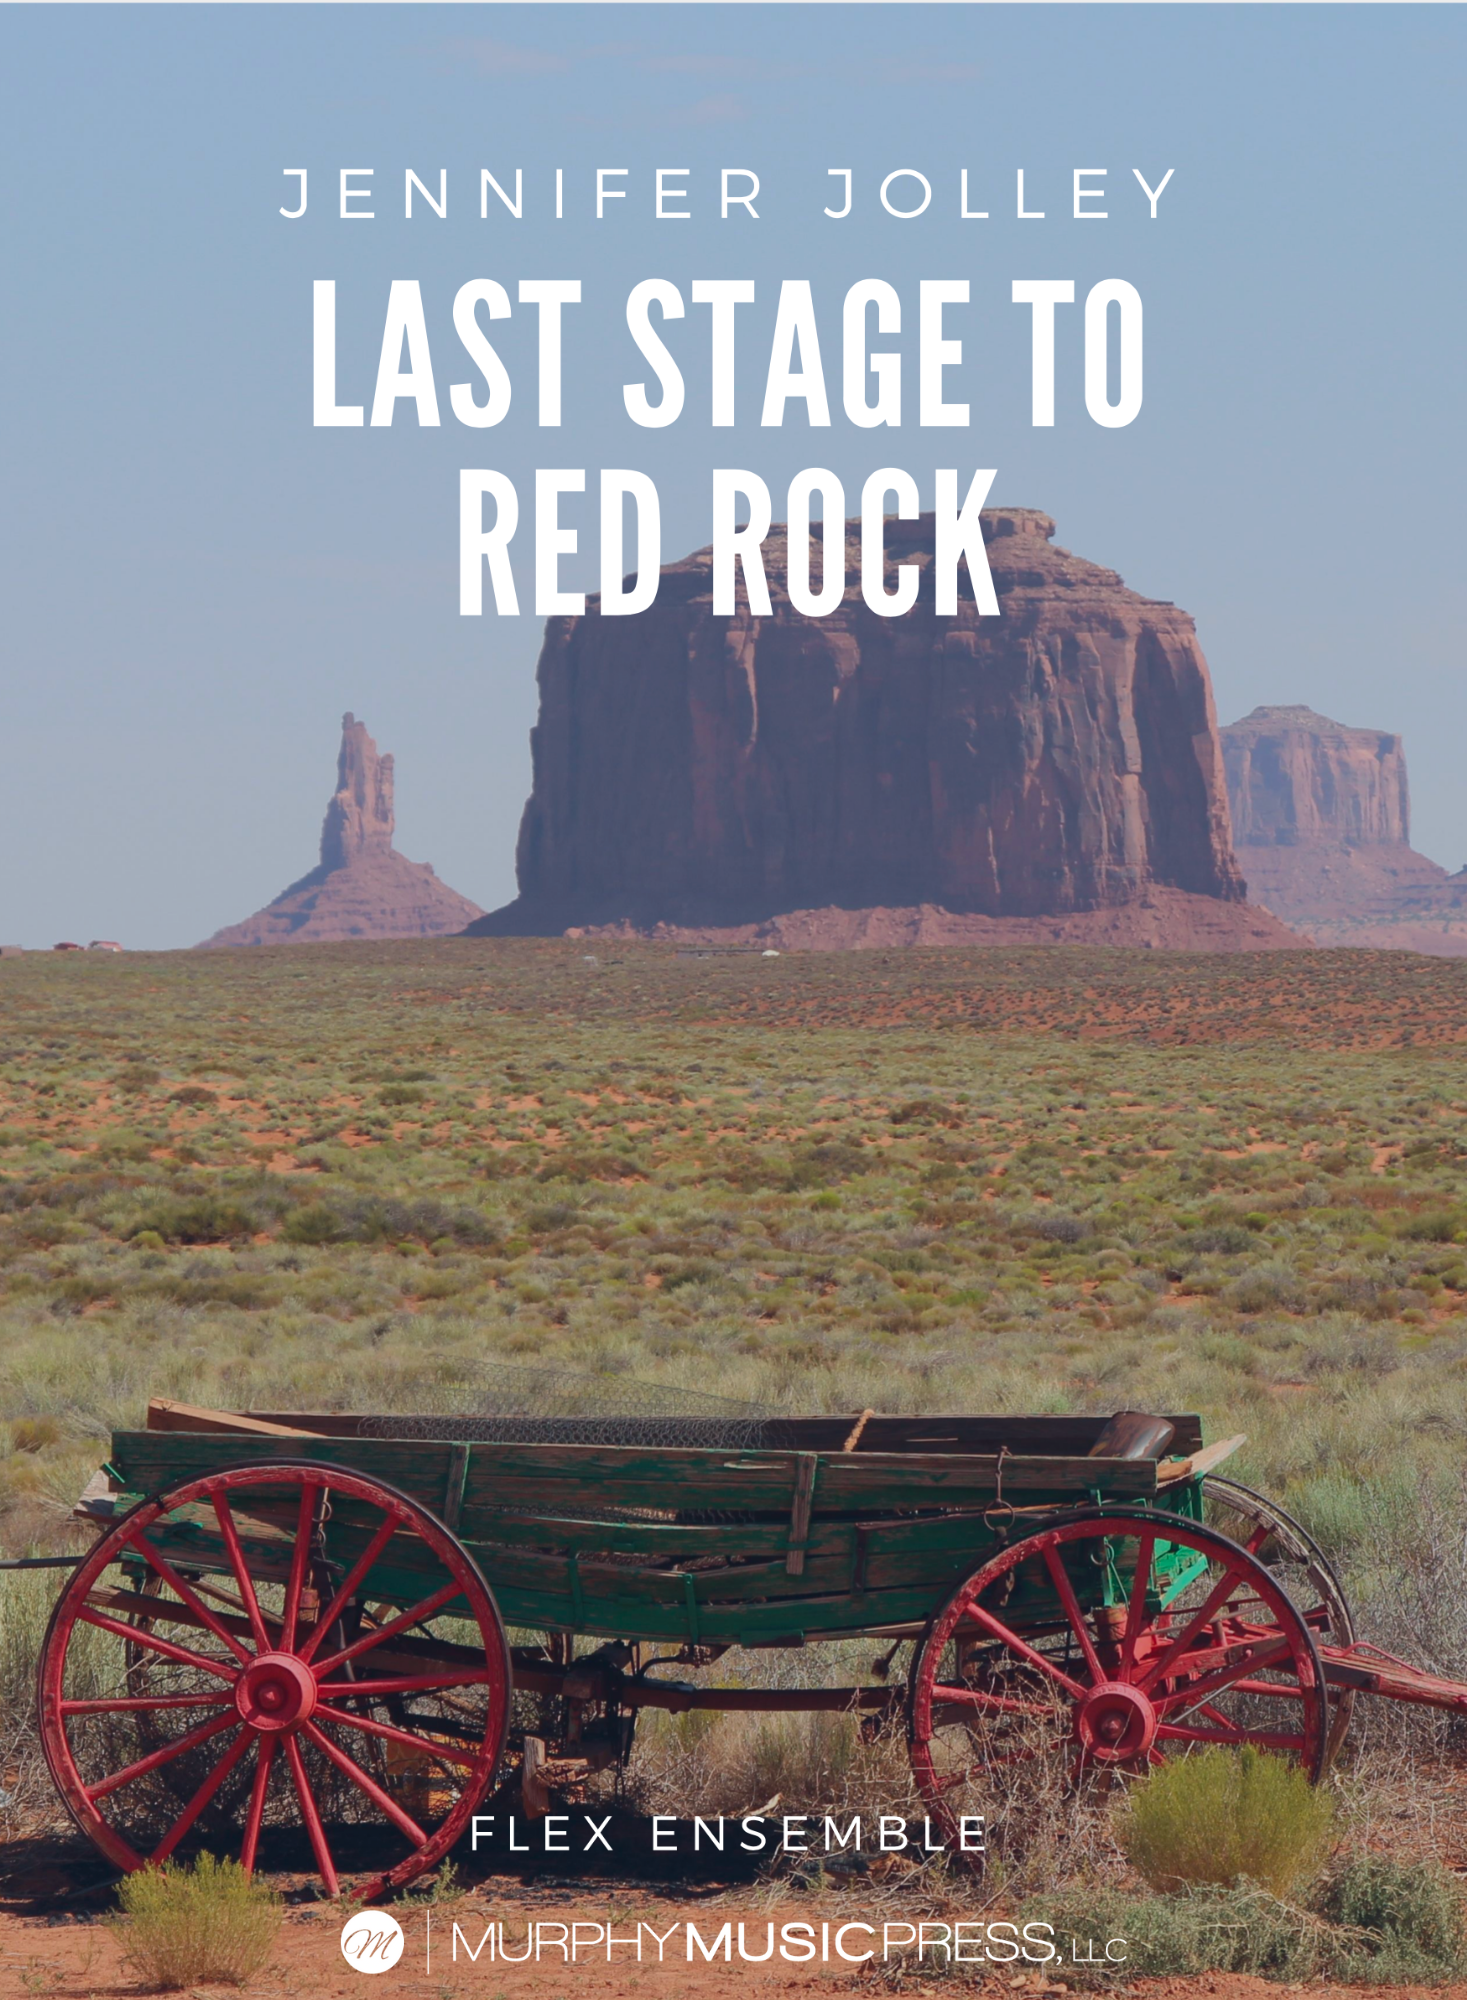 Last Stage To Red Rock (Flex Version) by Jennifer Jolley